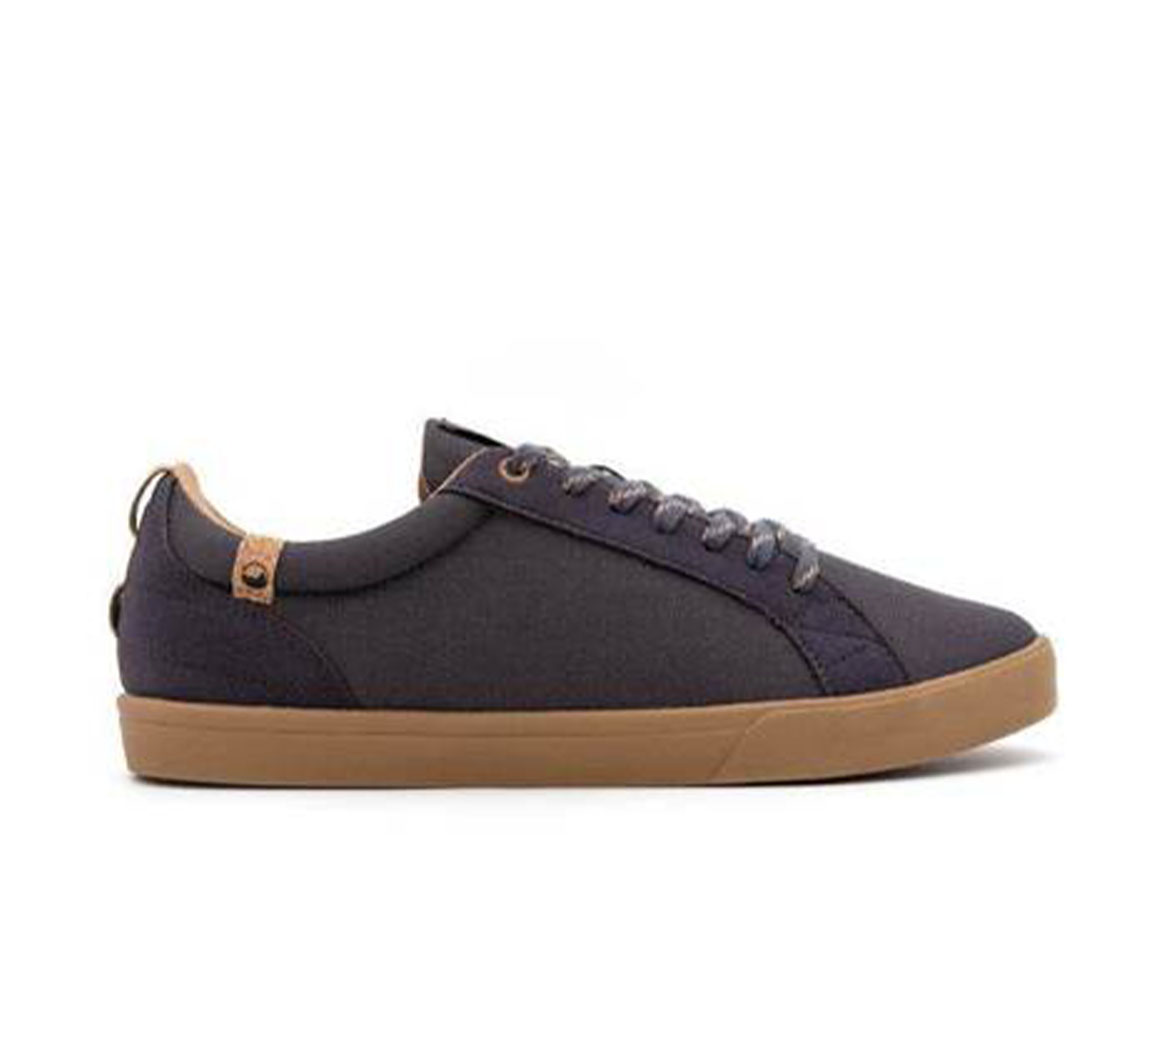 Chaussure vegan Cannon Obsidian Cannon Obsidian